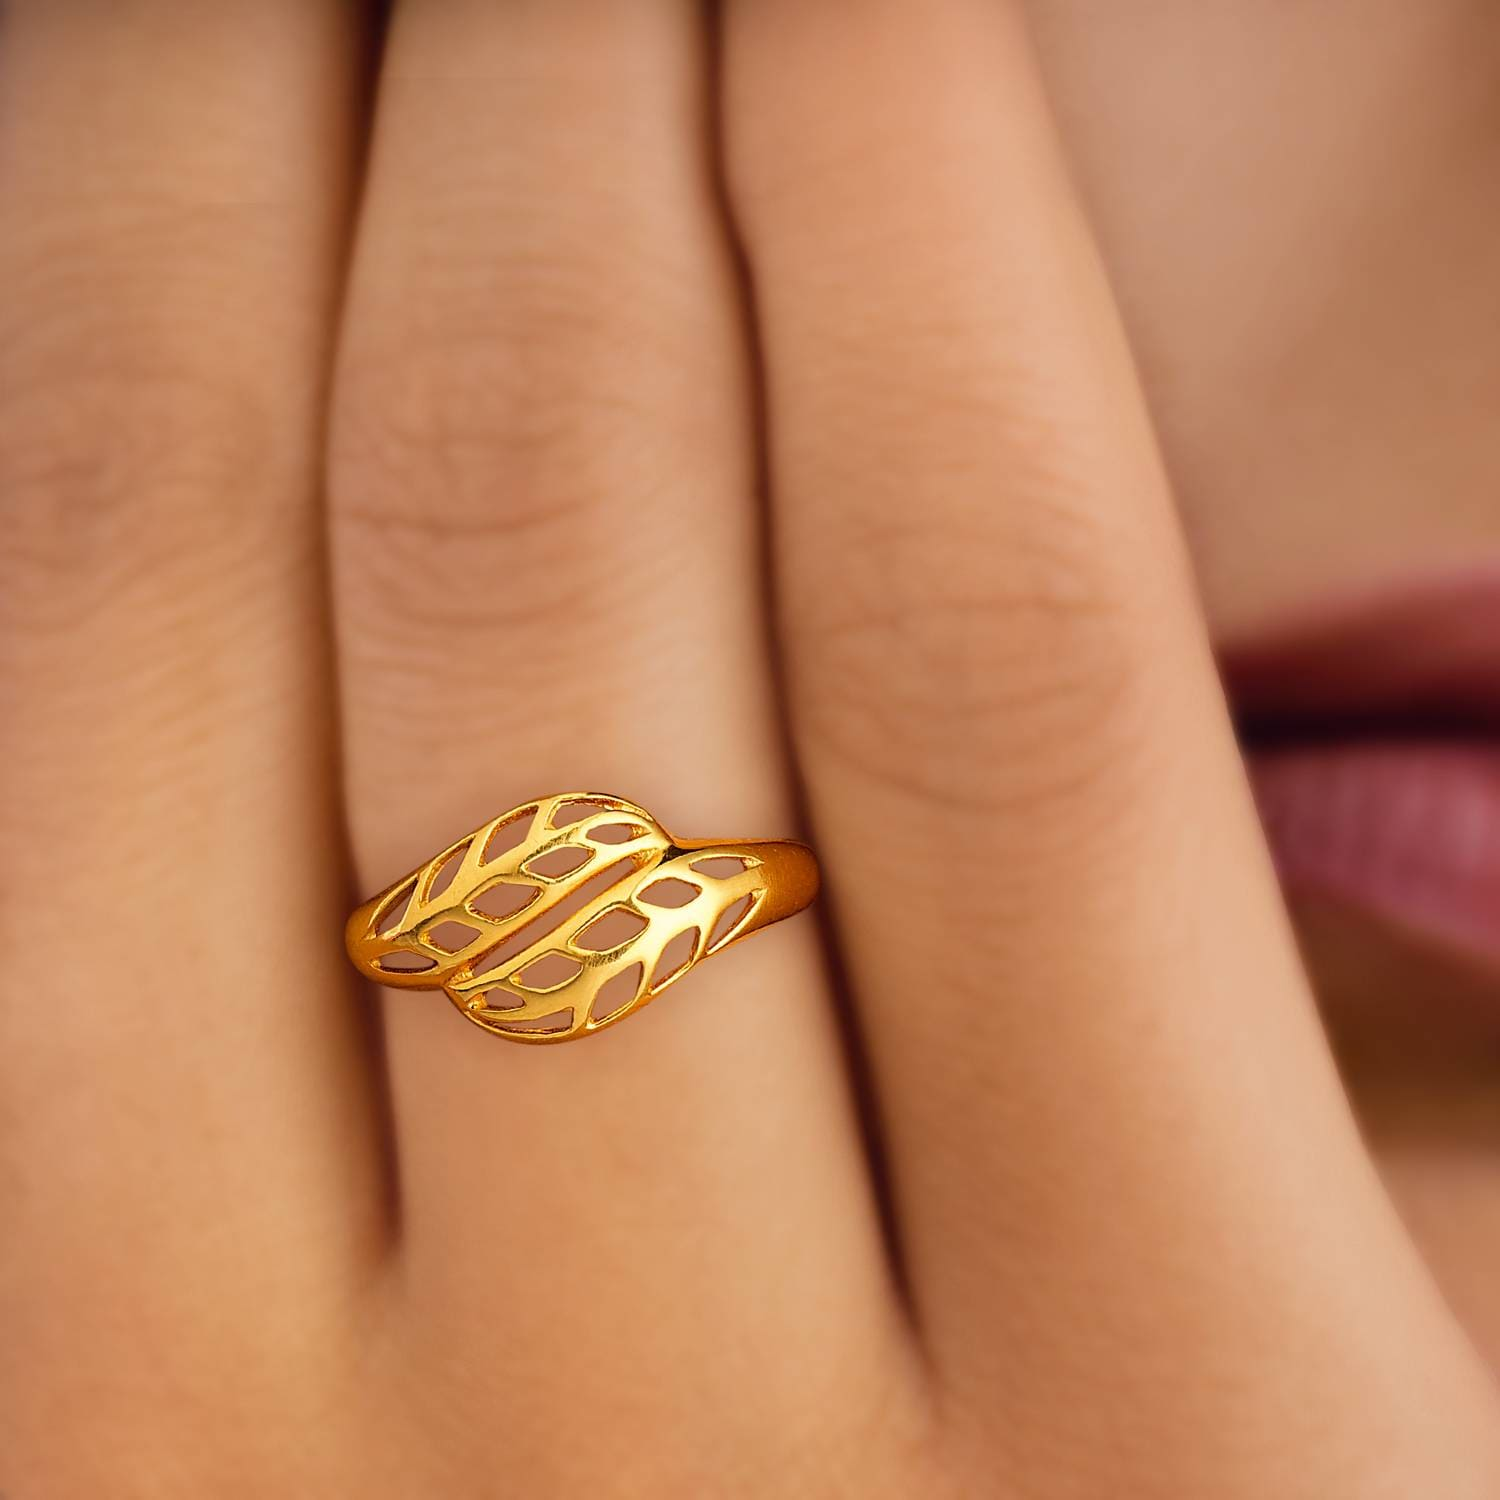 Shop Tanishq 22 KT Yellow Gold Finger Ring FBALAA00 from